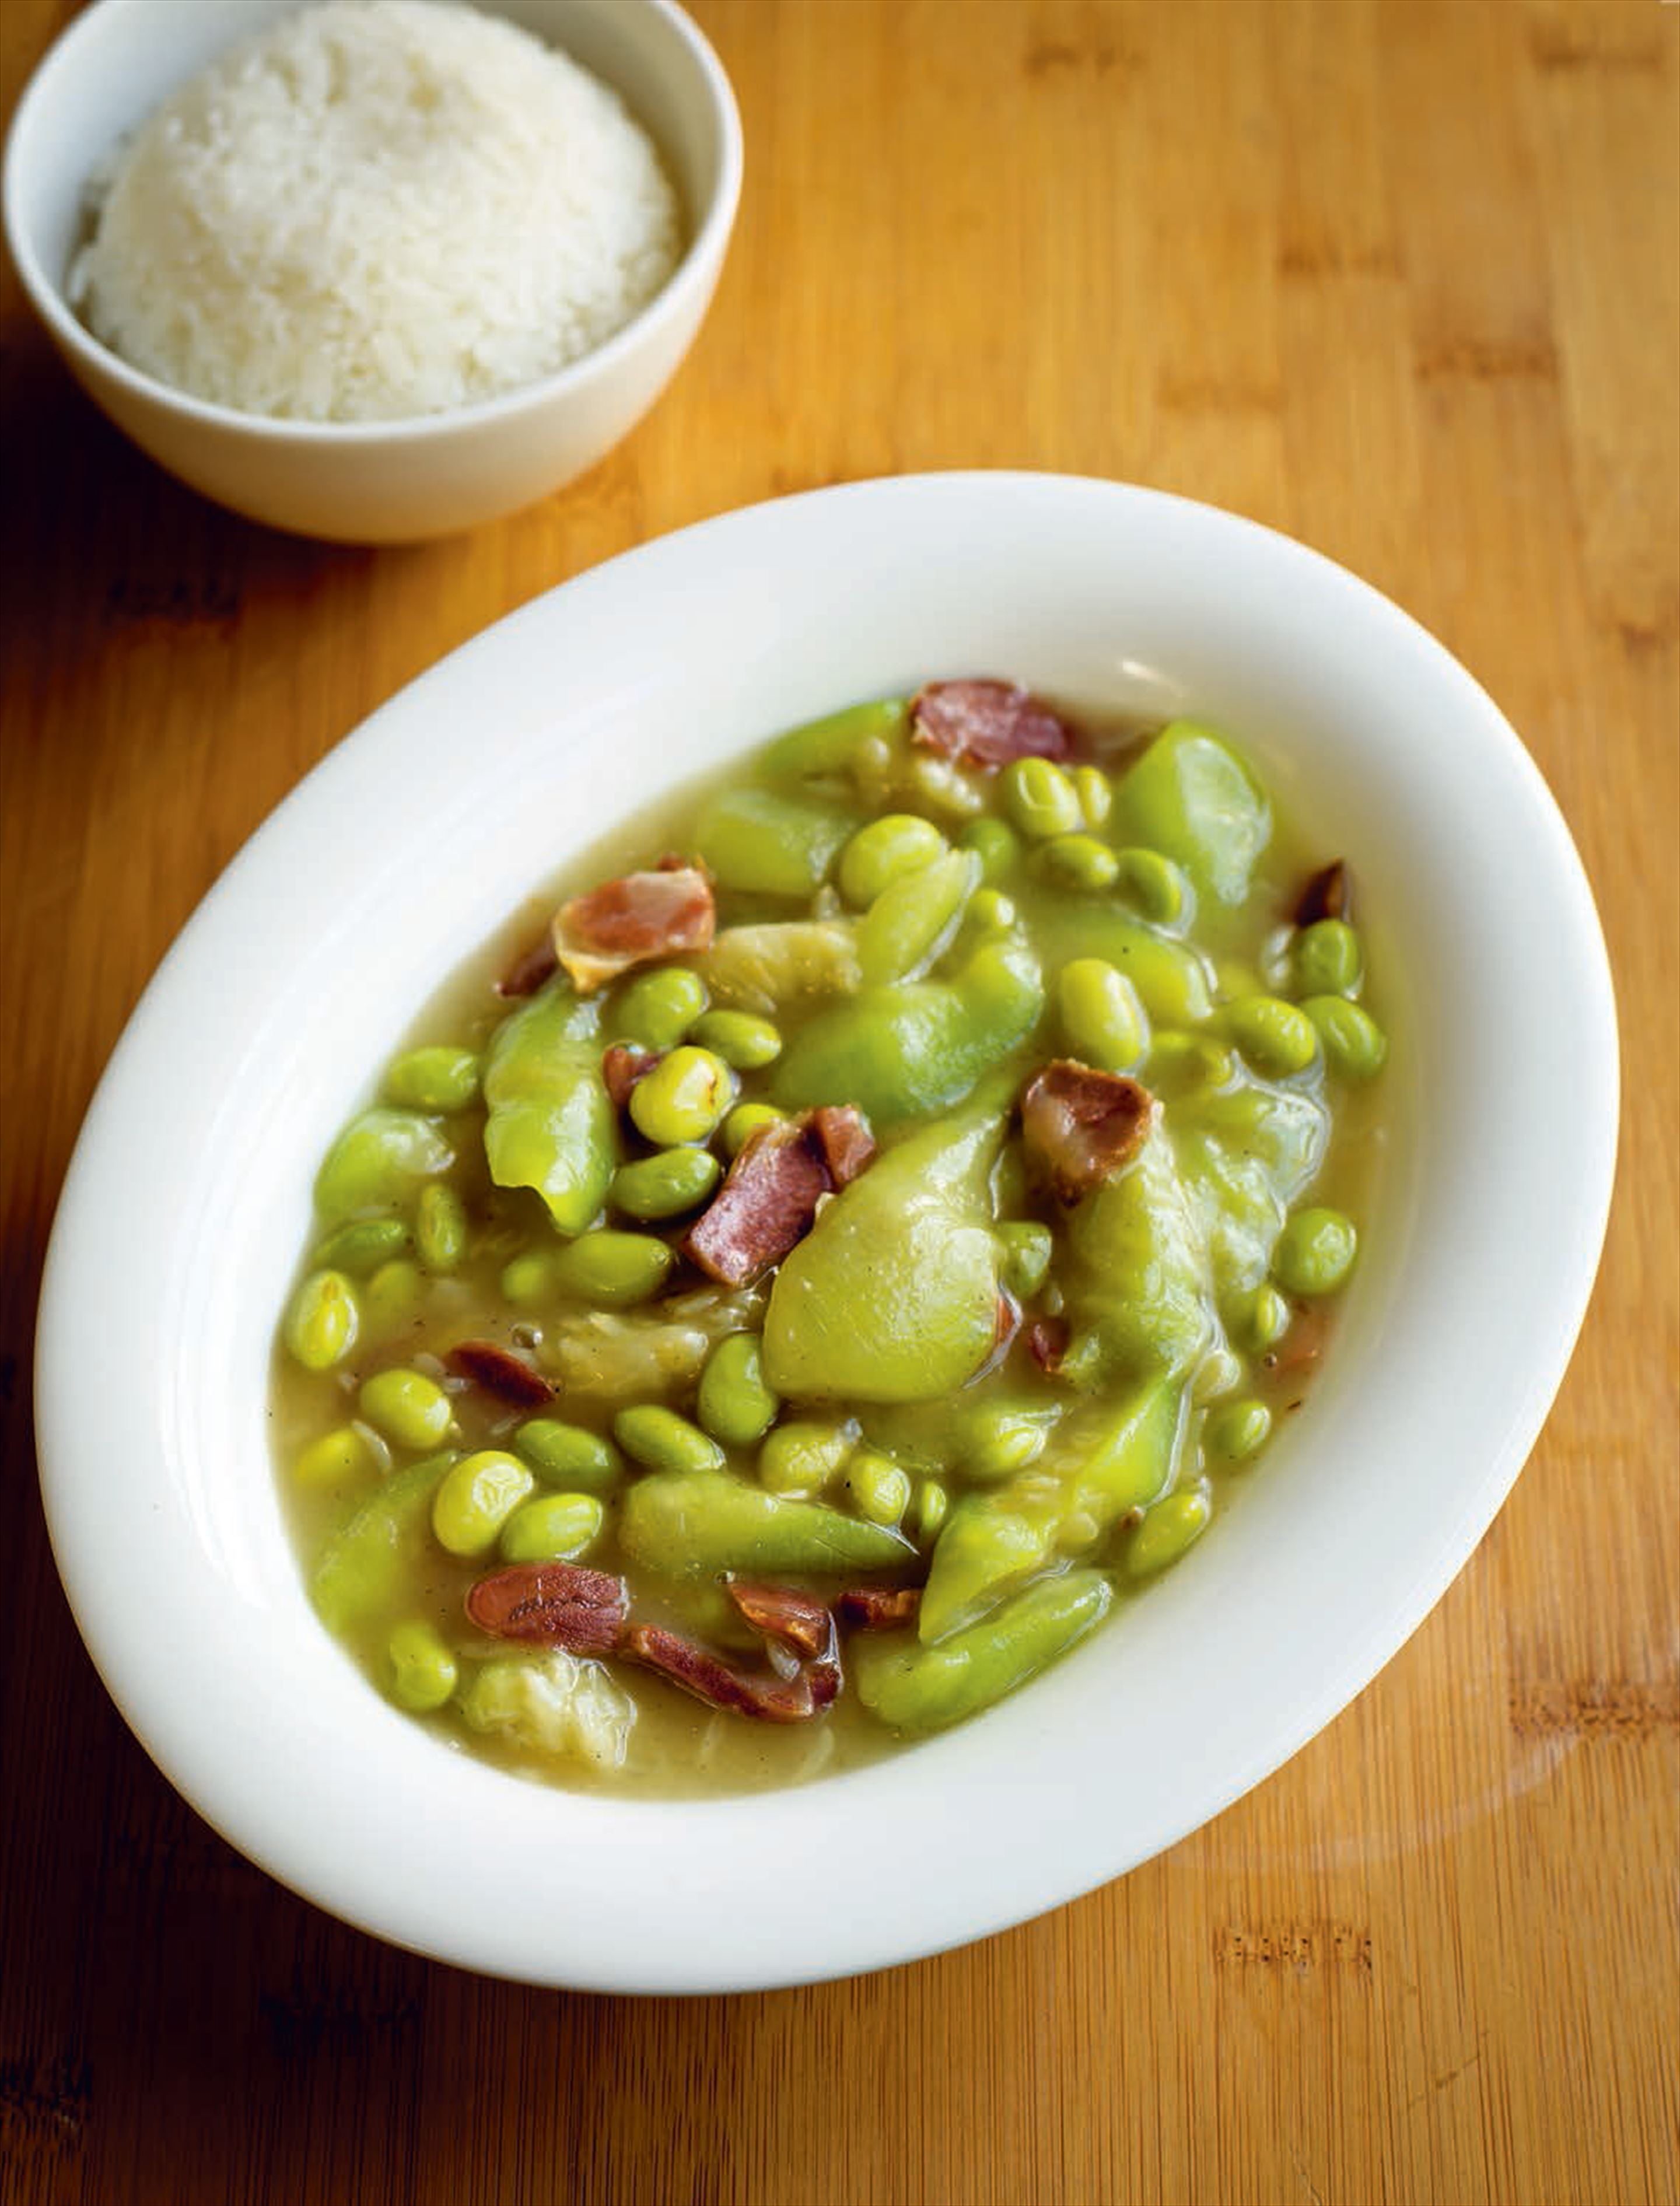 Silk gourd with green soy beans